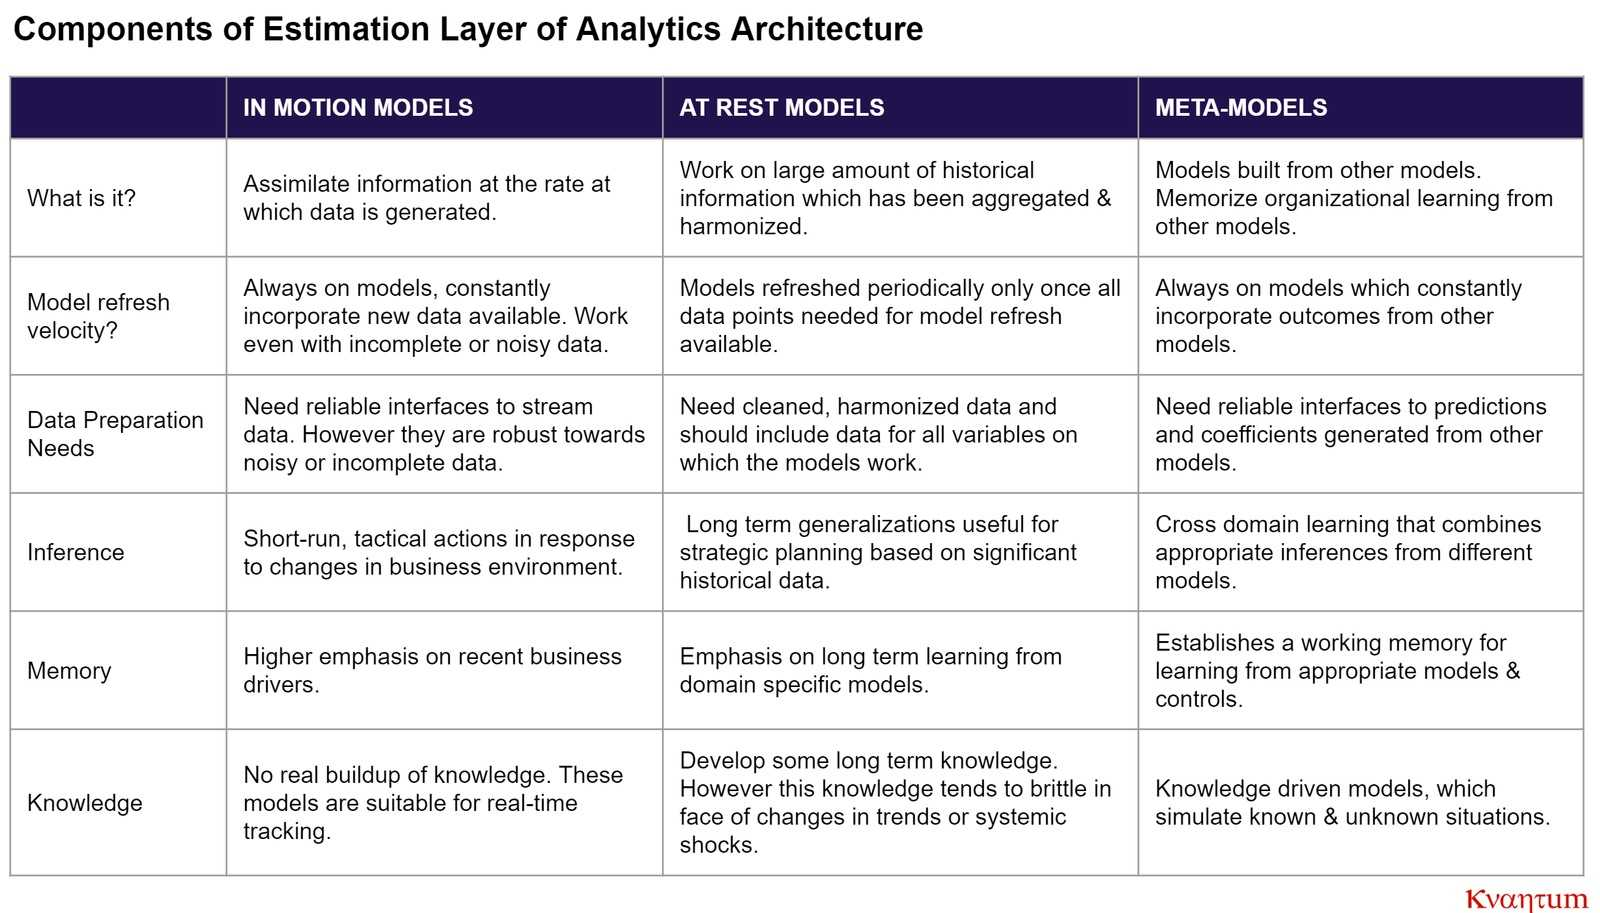 kvantum analytics architecture estimation layer components